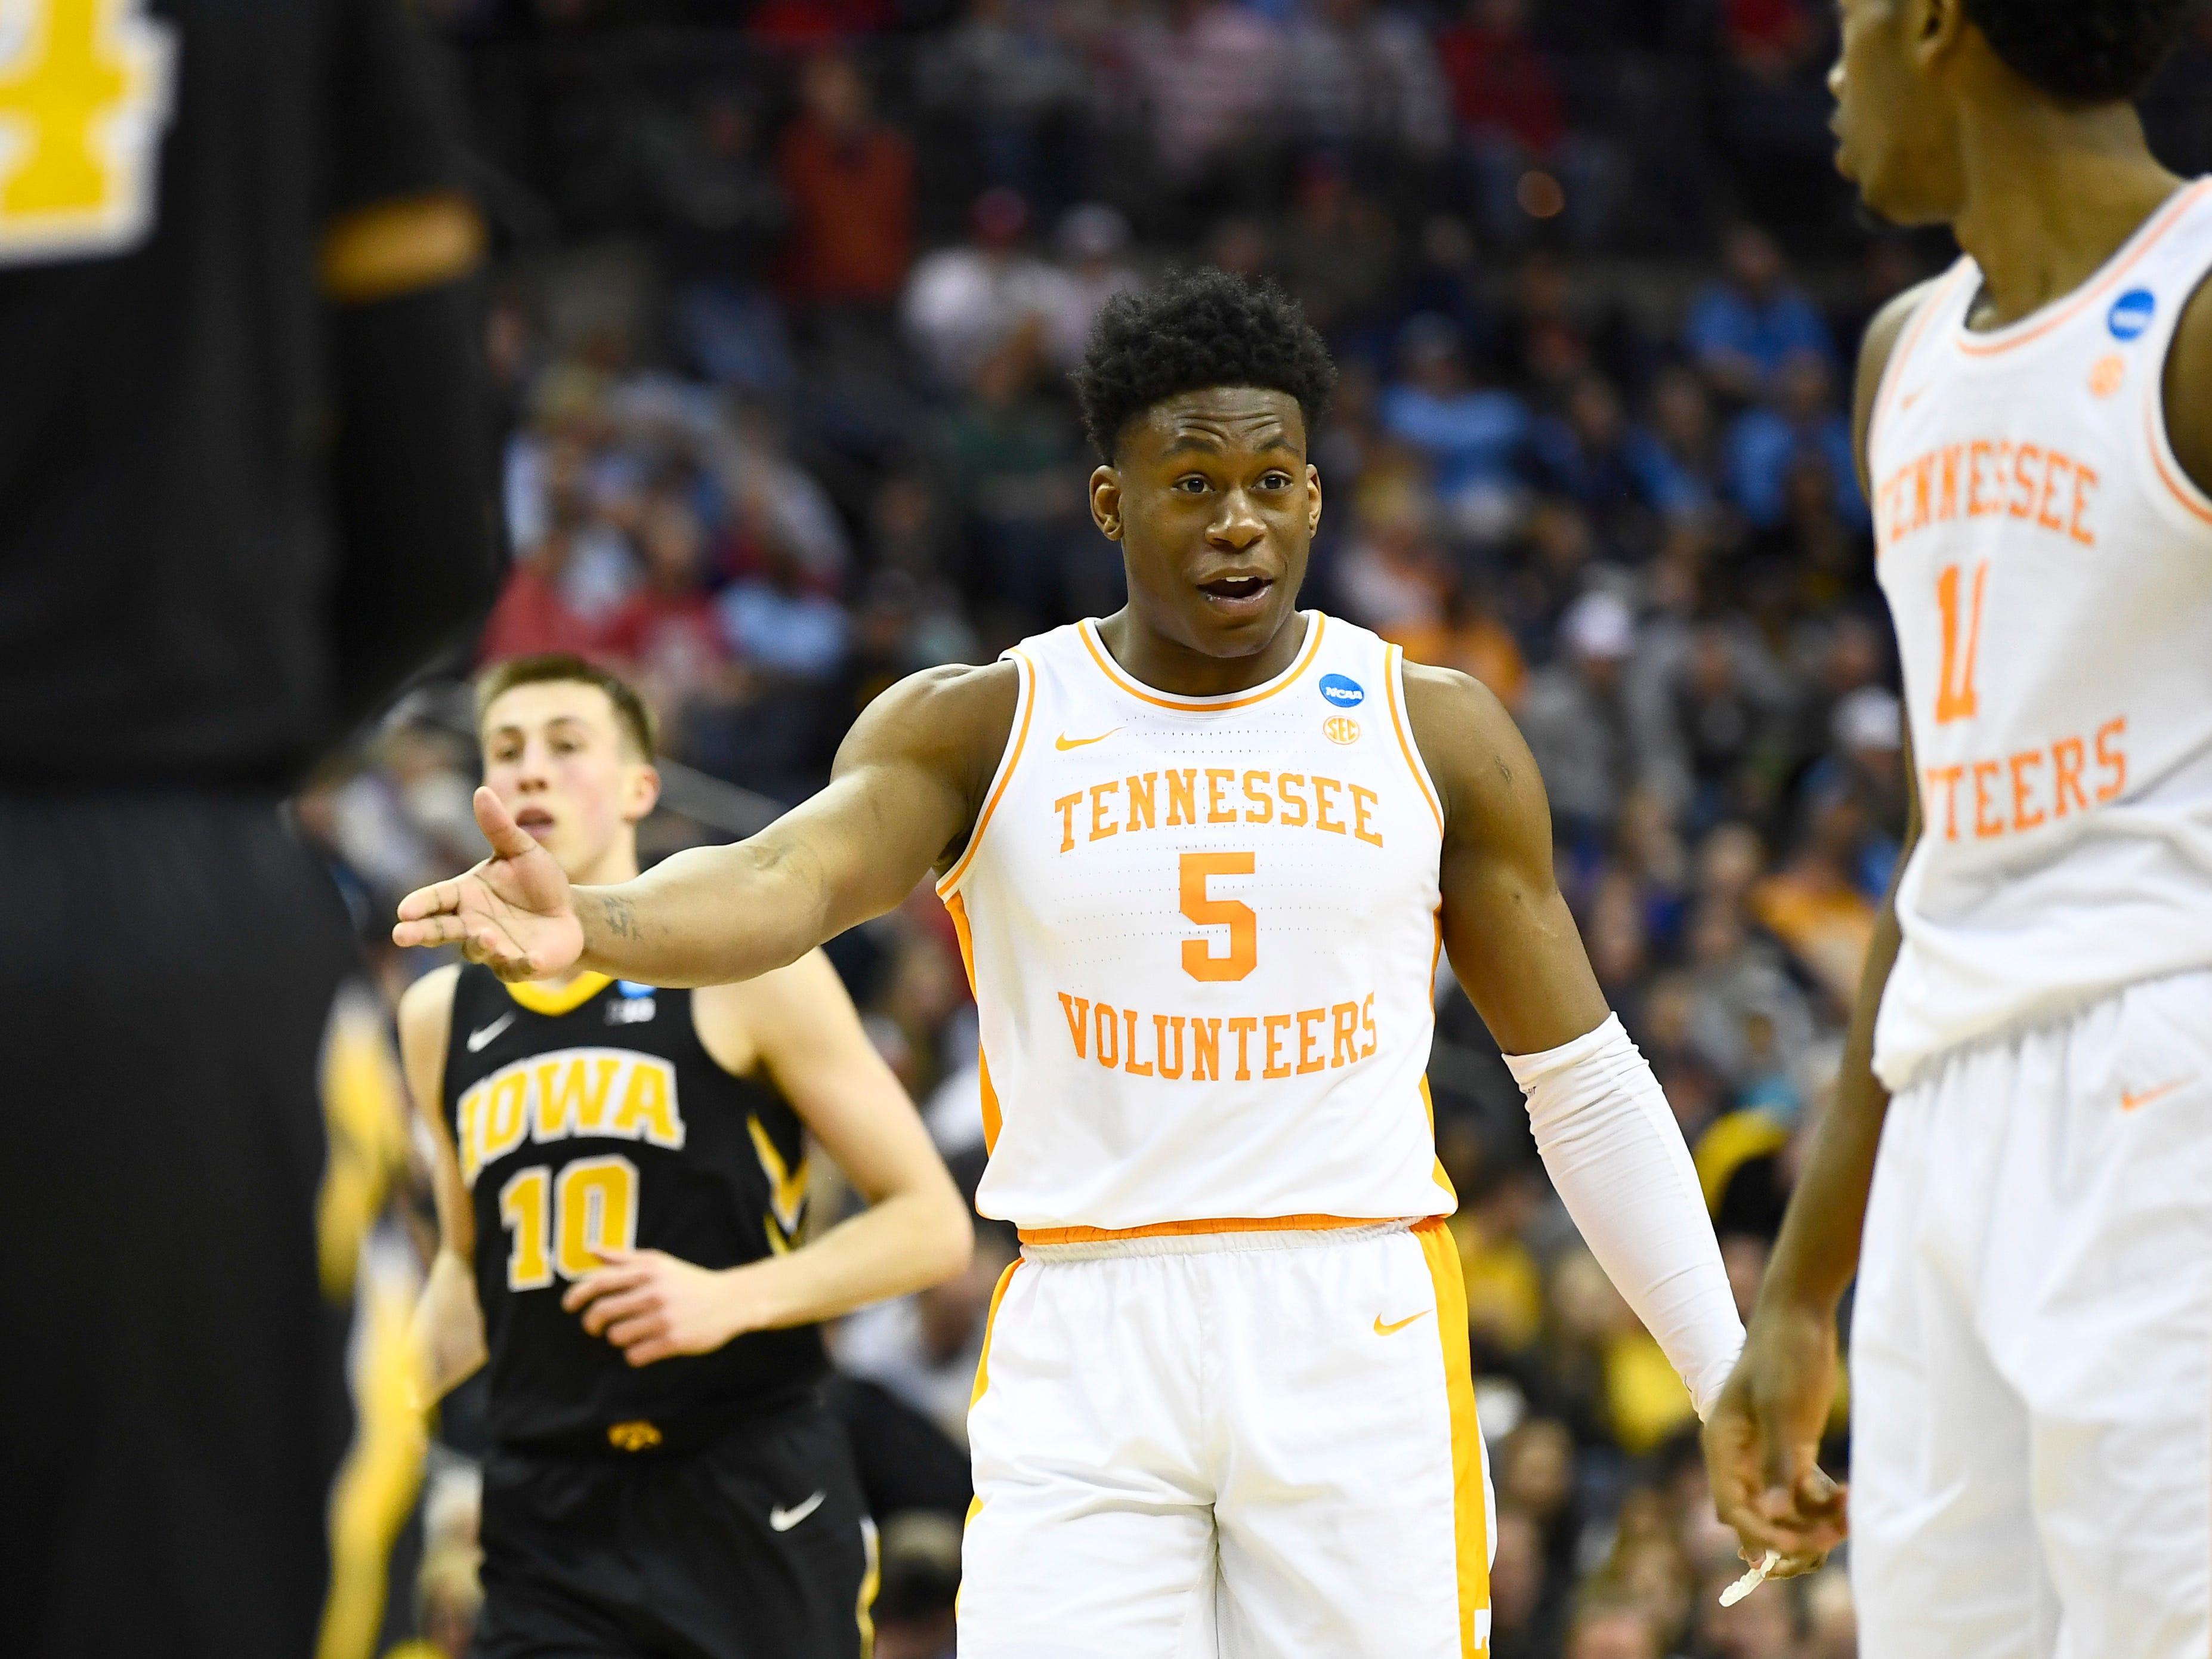 Tennessee guard Admiral Schofield (5) talks to forward Kyle Alexander (11) during the second half of the game against the Iowa Hawkeyes in the second round of the NCAA Tournament at Nationwide Arena in Columbus, Ohio, Sunday, March 24, 2019.